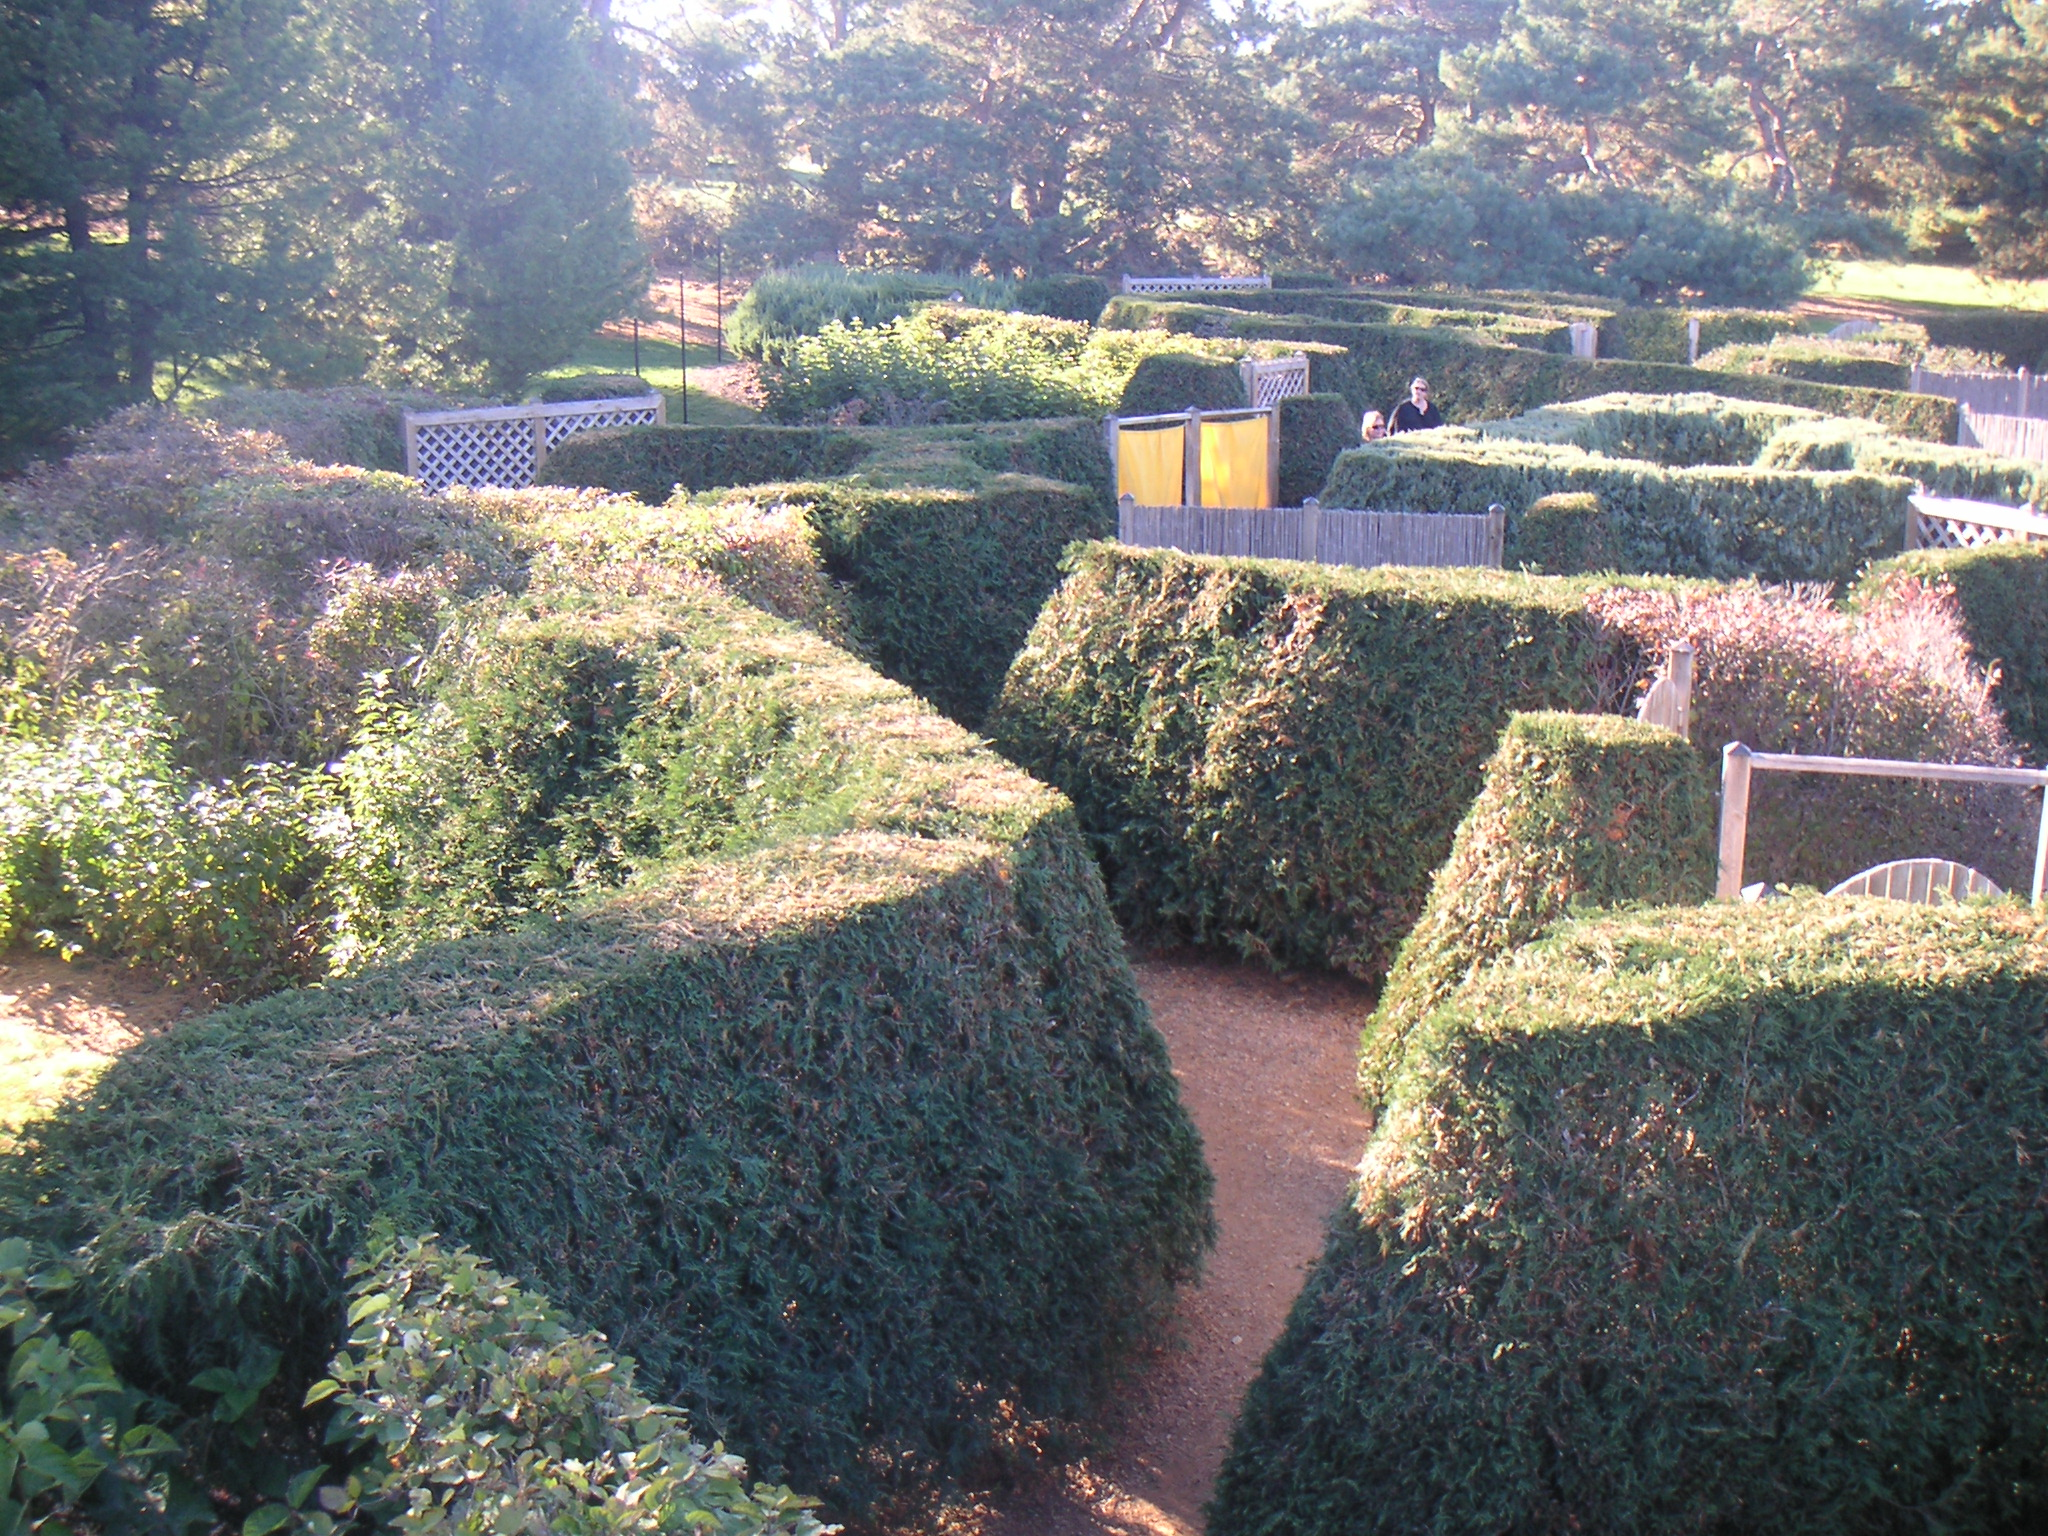 The Arboretum's Amazing Hedge Maze